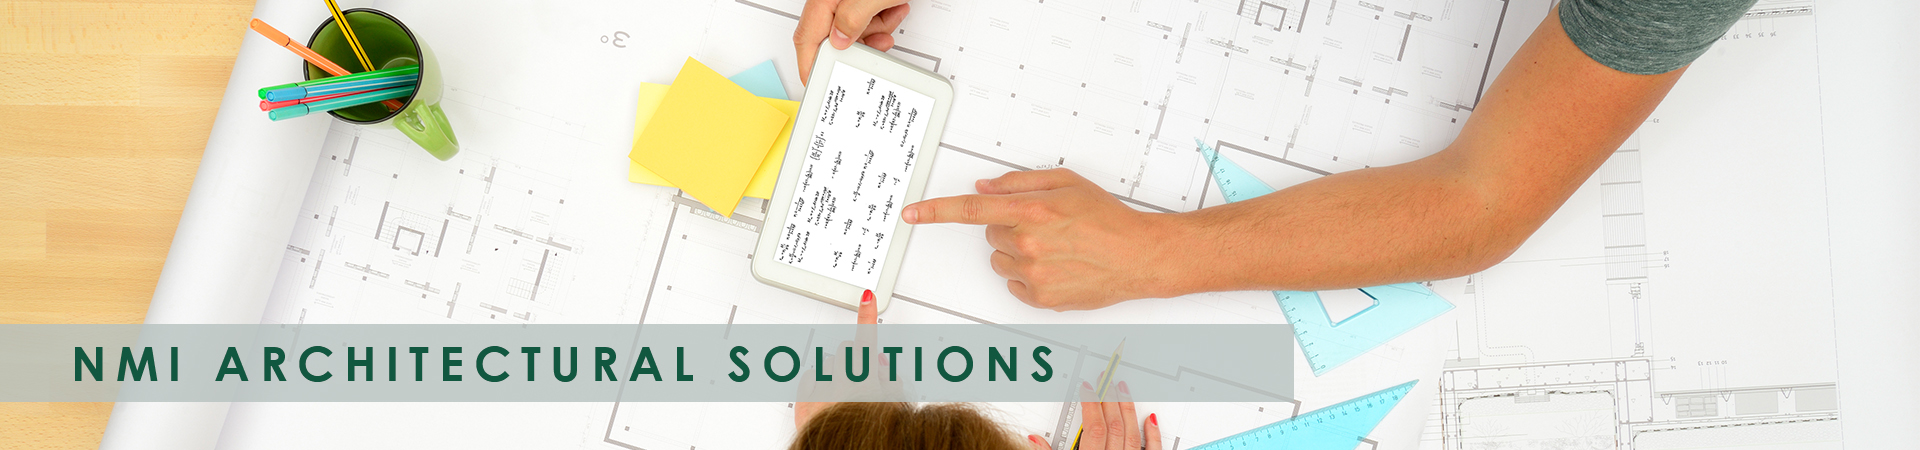 NMI architectural solutions consulting services